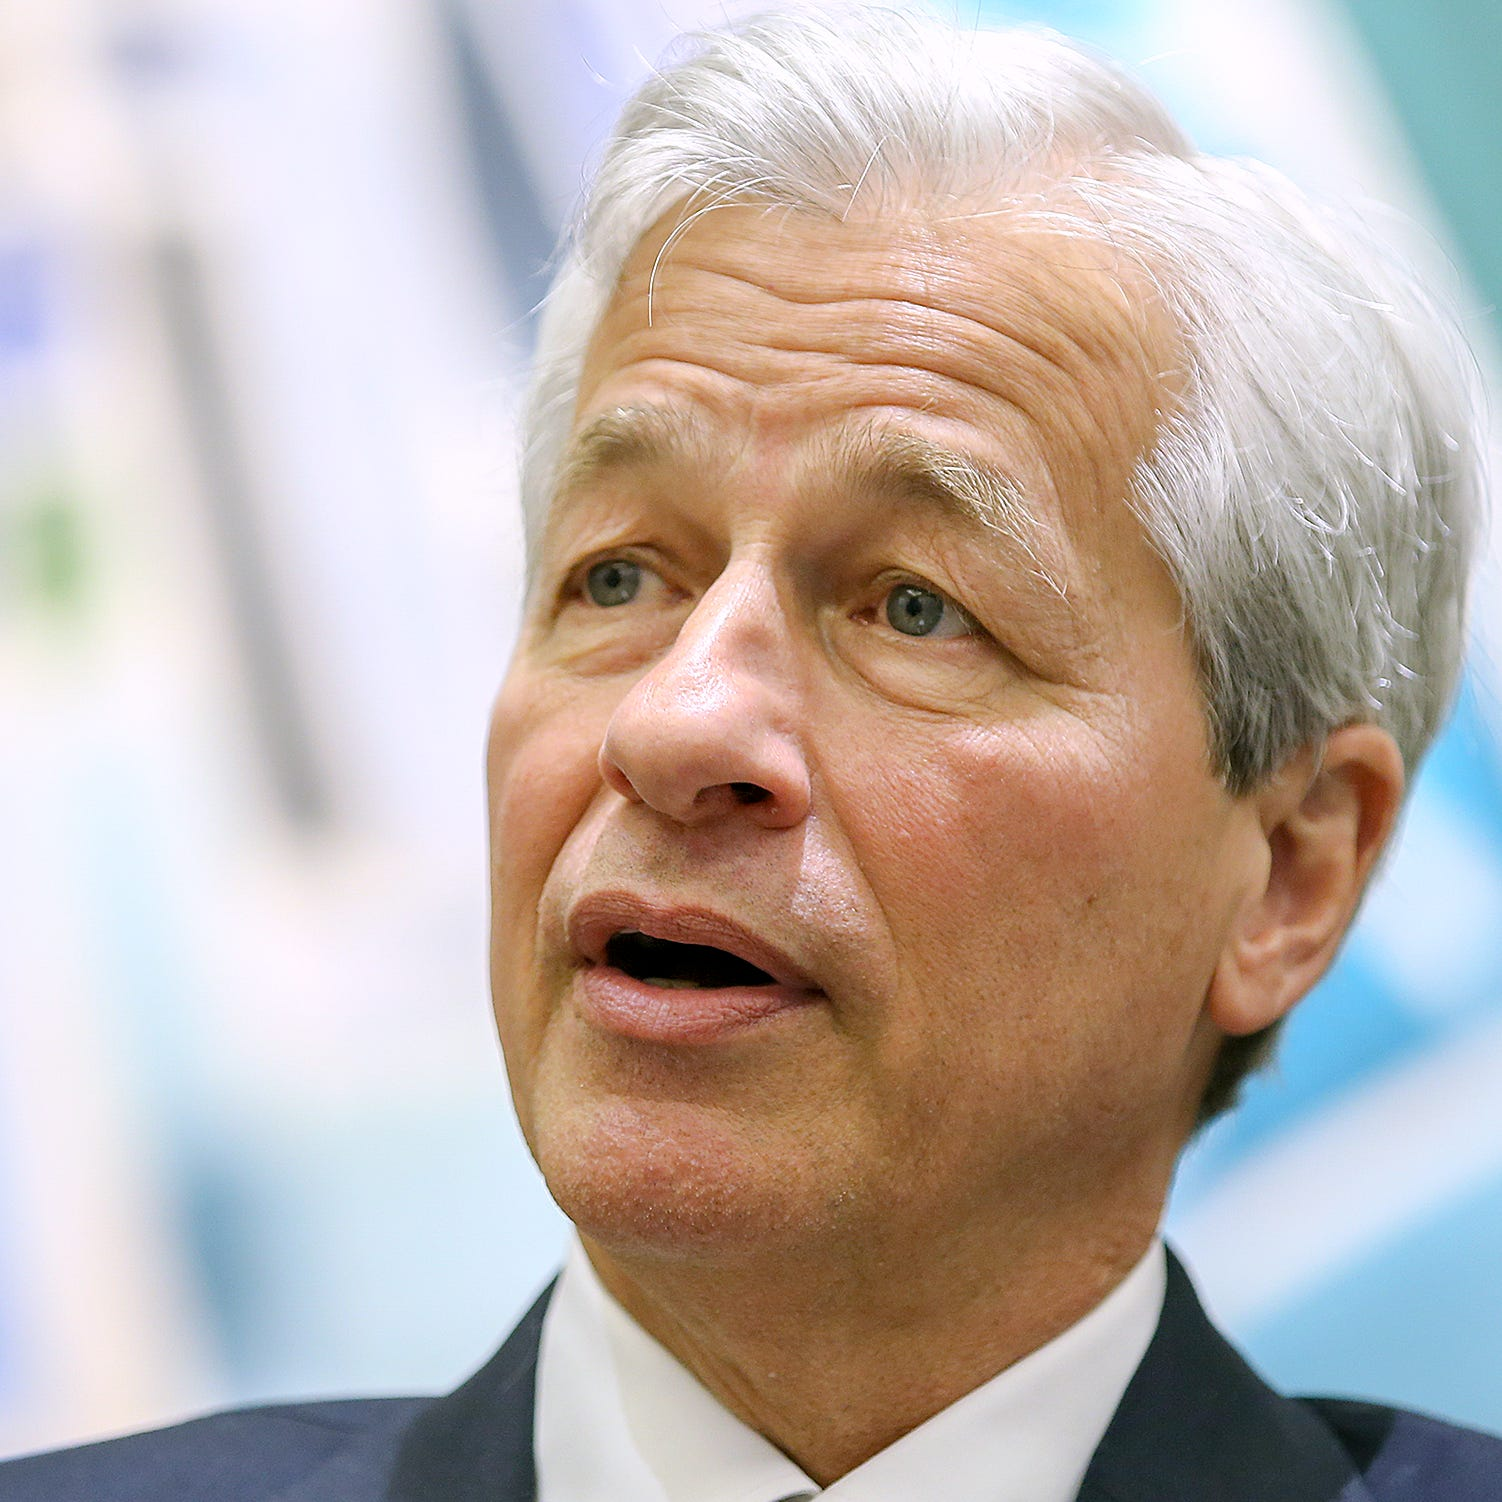 JPMorgan Chase CEO Jamie Dimon: Predictions of a looming recession are overblown